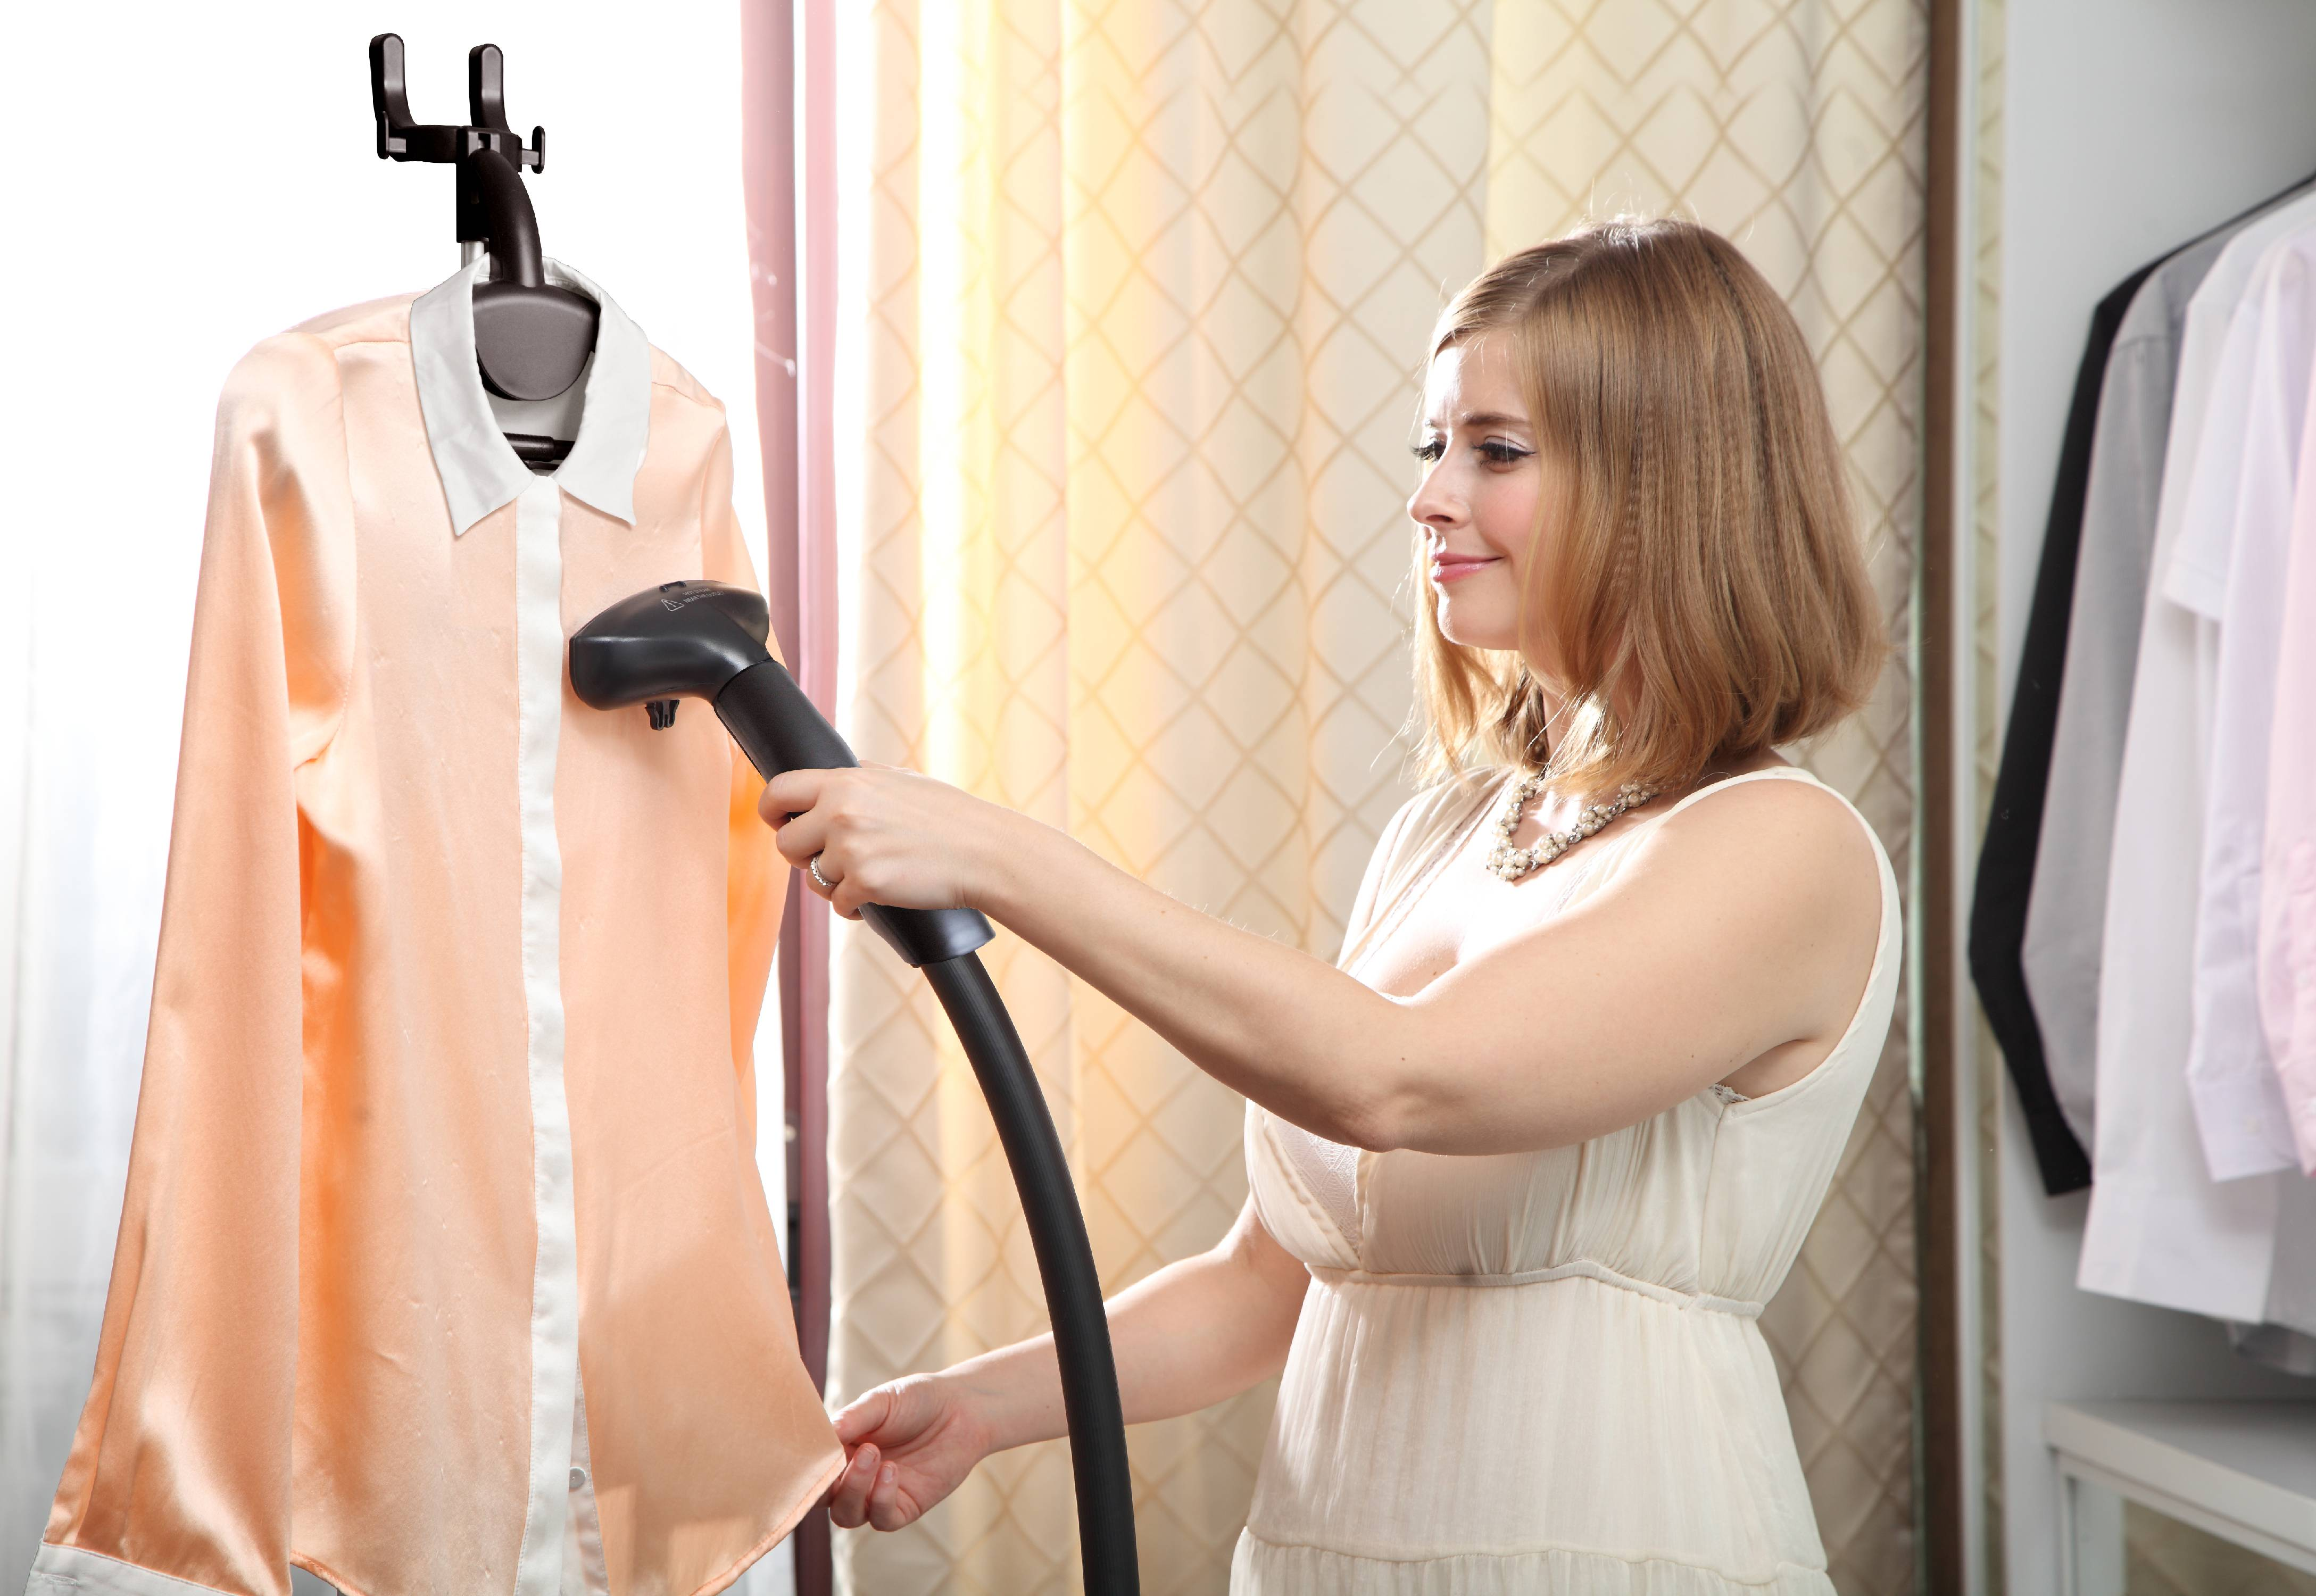 Click here to buy SALAV GS18-DJ 120 Performance Series Garment Steamer, White by Salav.